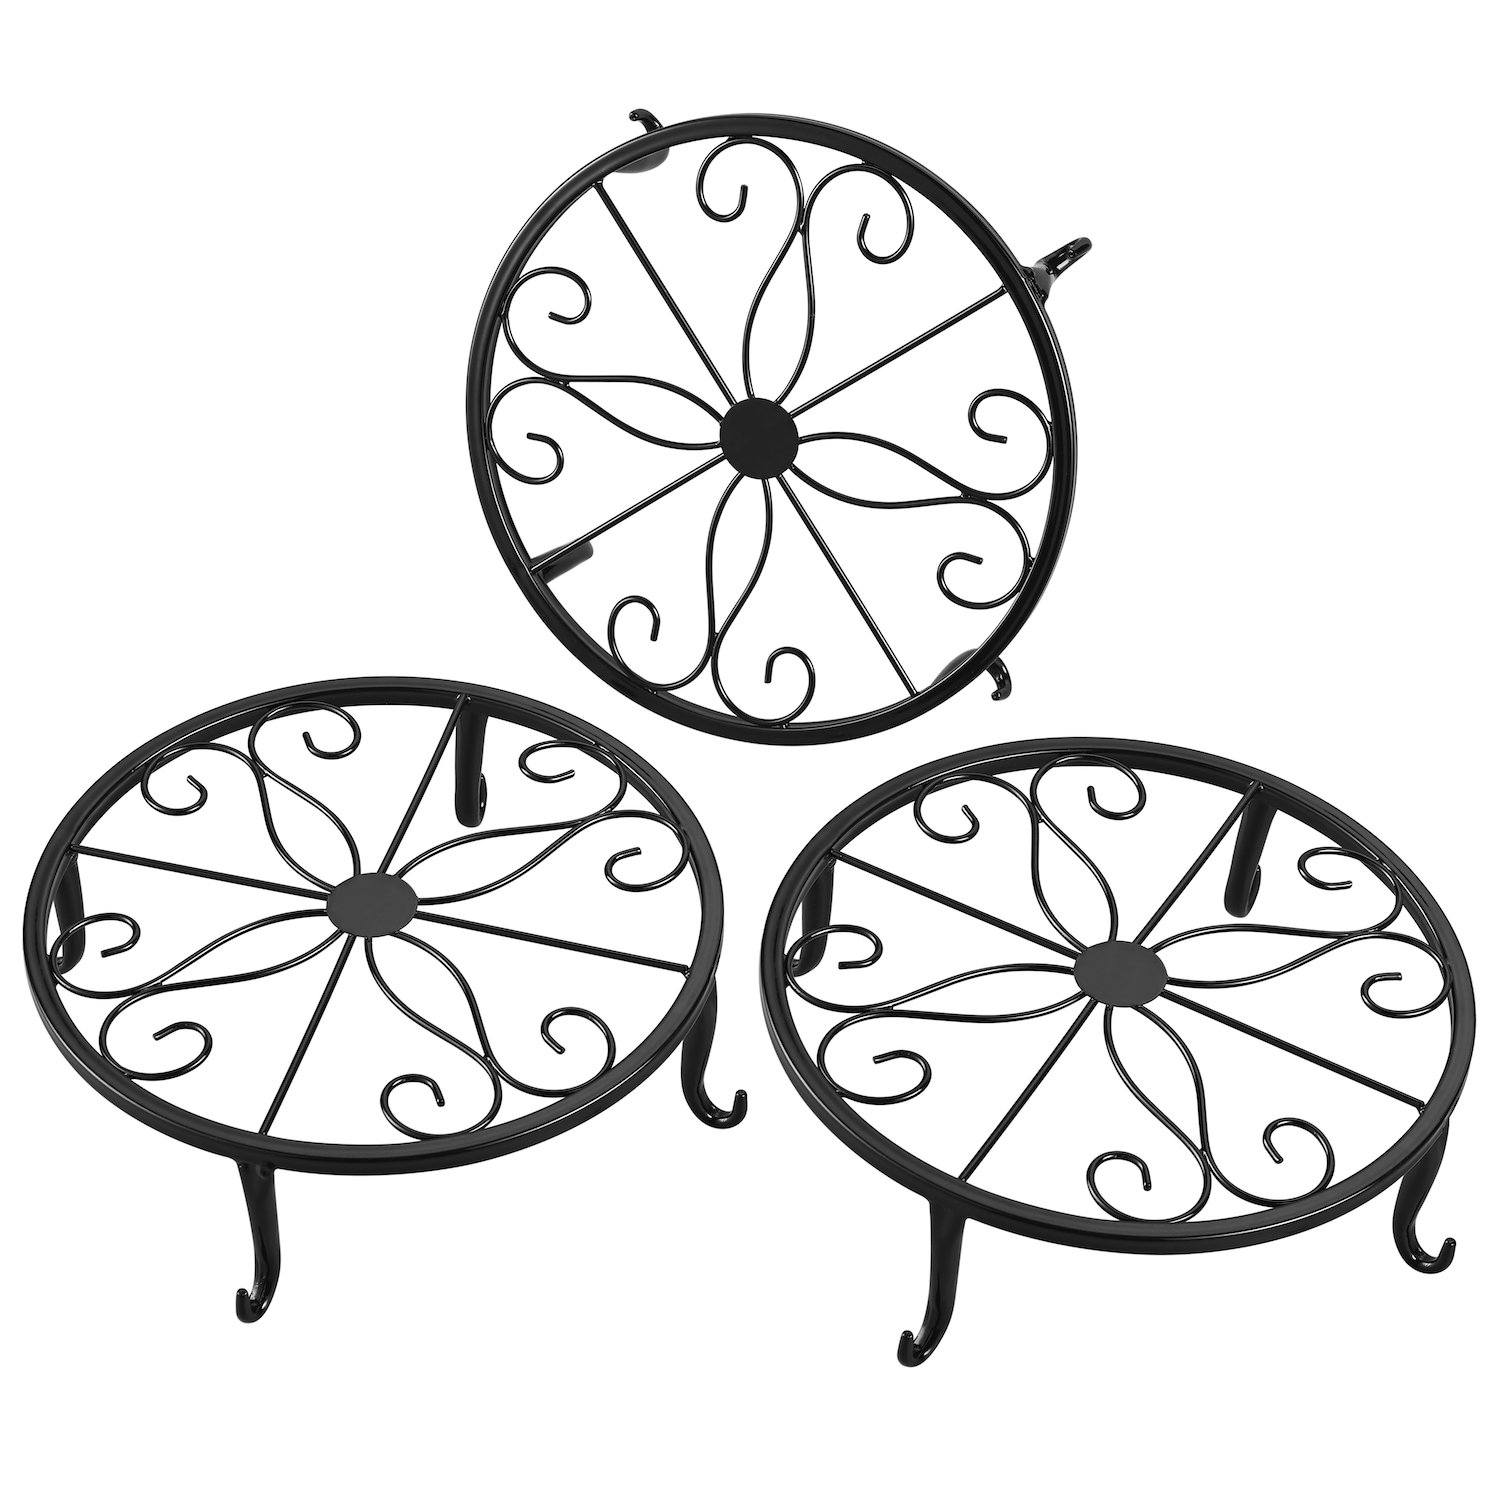 FaithLand Metal Potted Plant Stand, Pot Holder, Decorative Pot Trivet, 9 inch, Black, Set of 3 by FaithLand